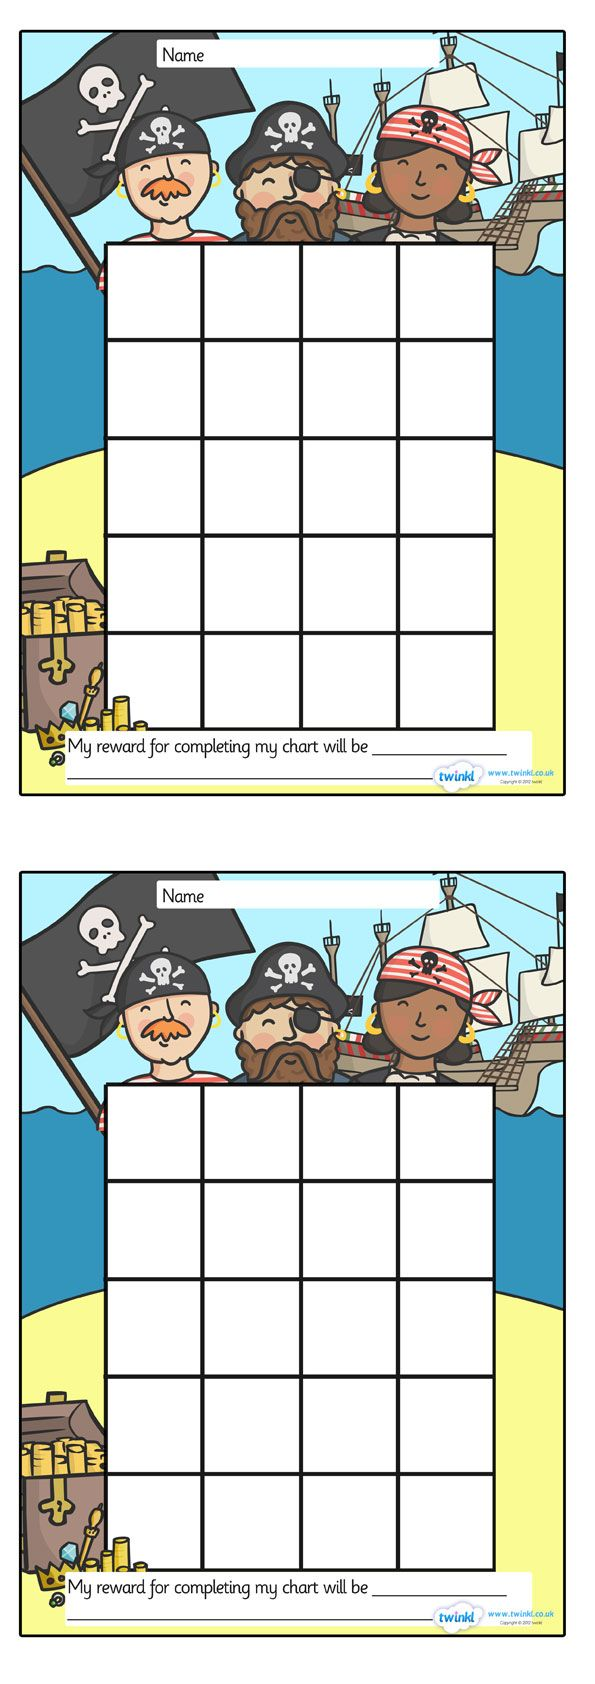 Twinkl Resources >> Pirate Sticker Stamp Reward Chart >> Thousands of printable primary teaching resources for EYFS, KS1, KS2 and beyond! pirate themed, sticker, stamp, reward chart, editable, charts, award, well done, achievement, progress